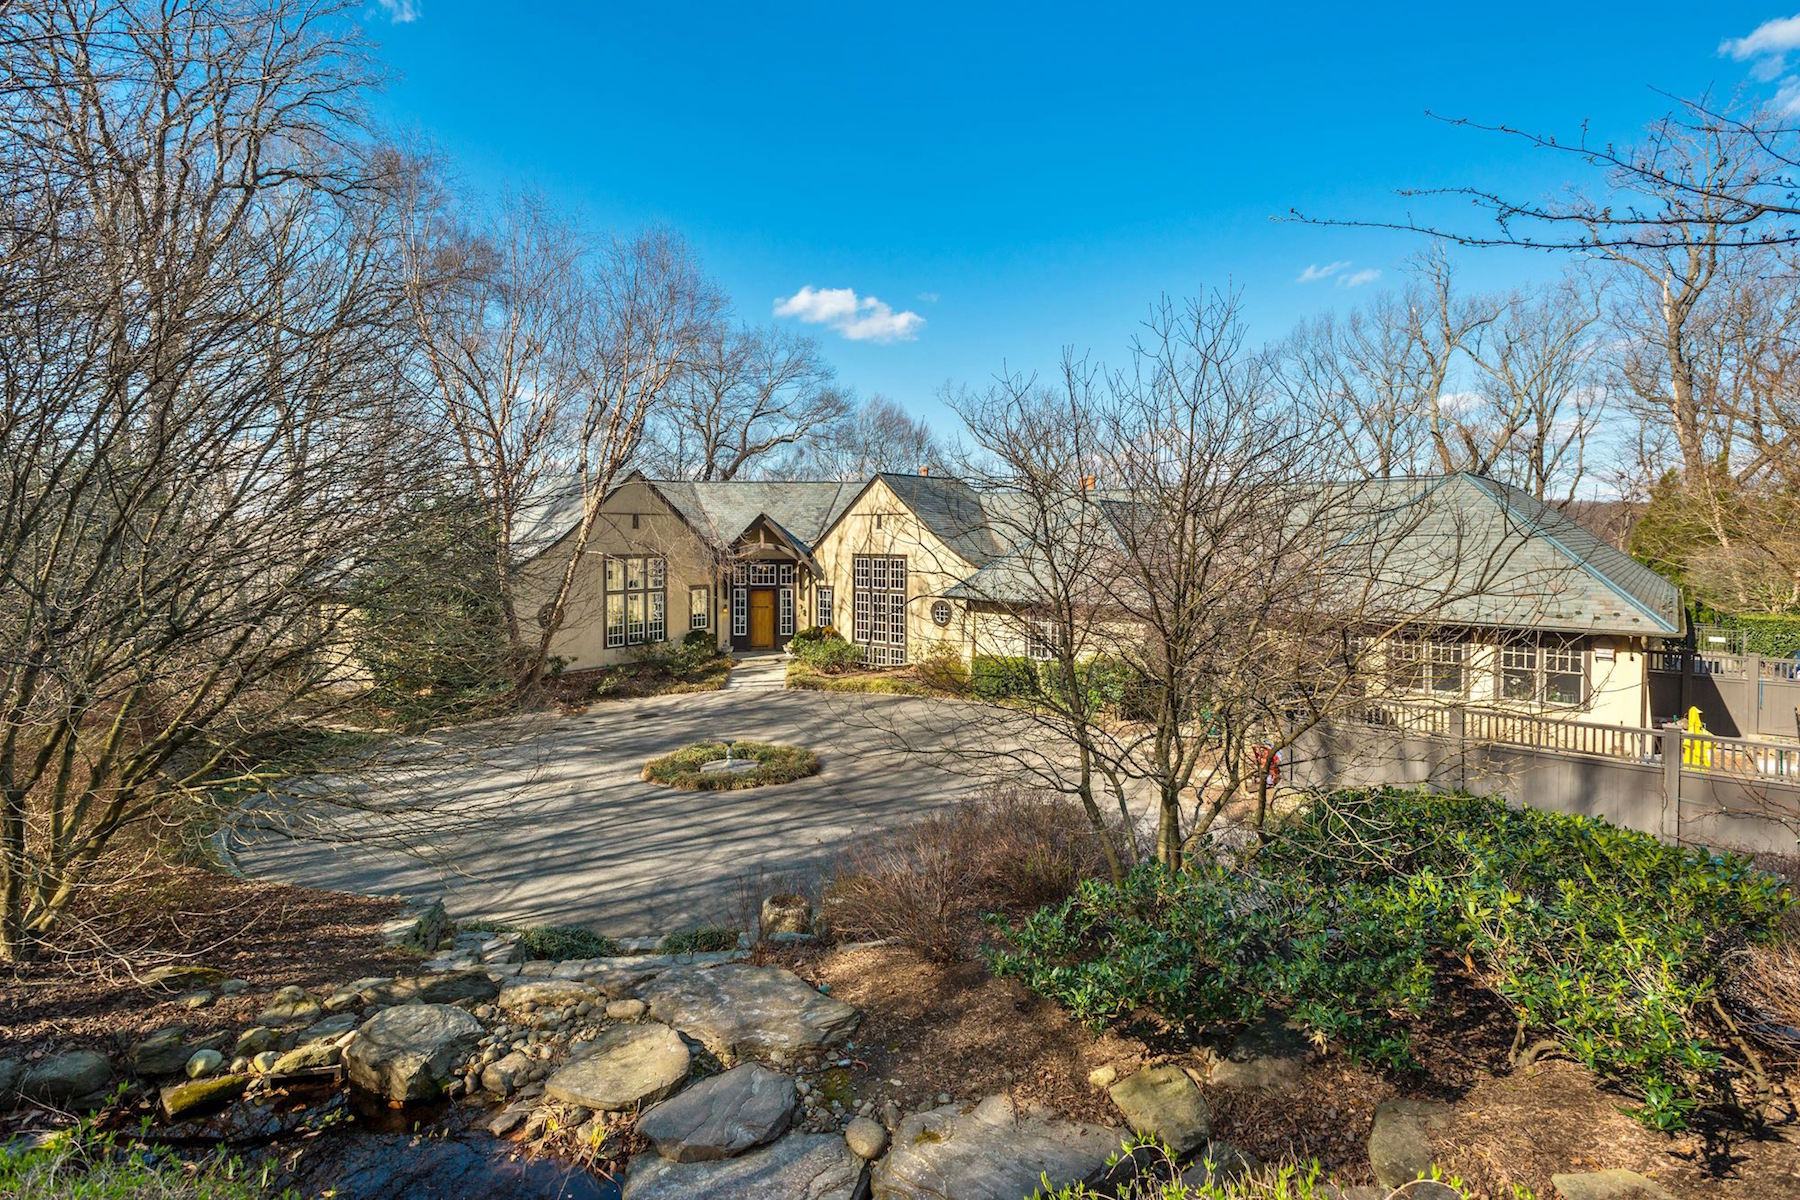 Single Family Home for Sale at Sublime Private Retreat 604 Boyle Ln McLean, Virginia 22102 United States